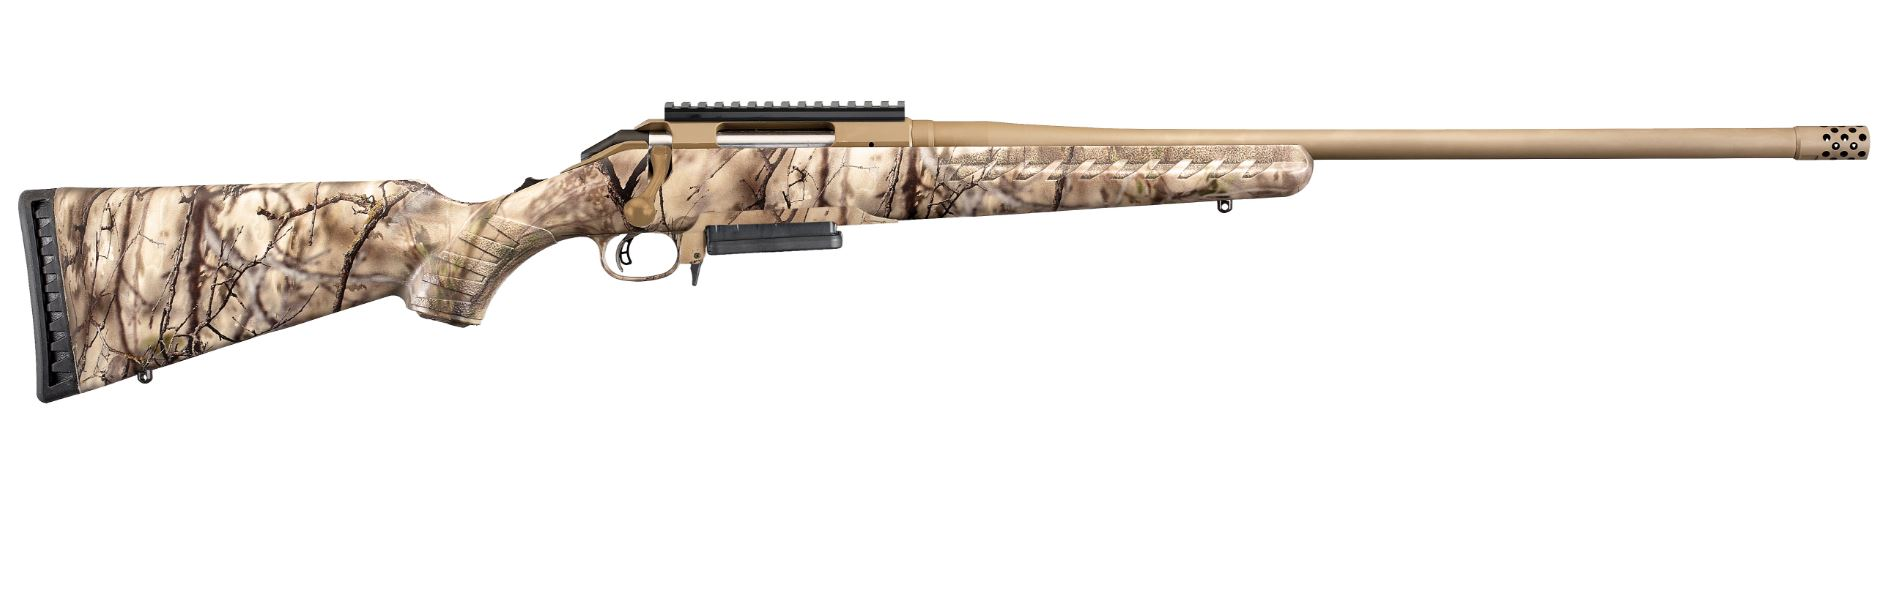 Ruger American Rifle 30-06